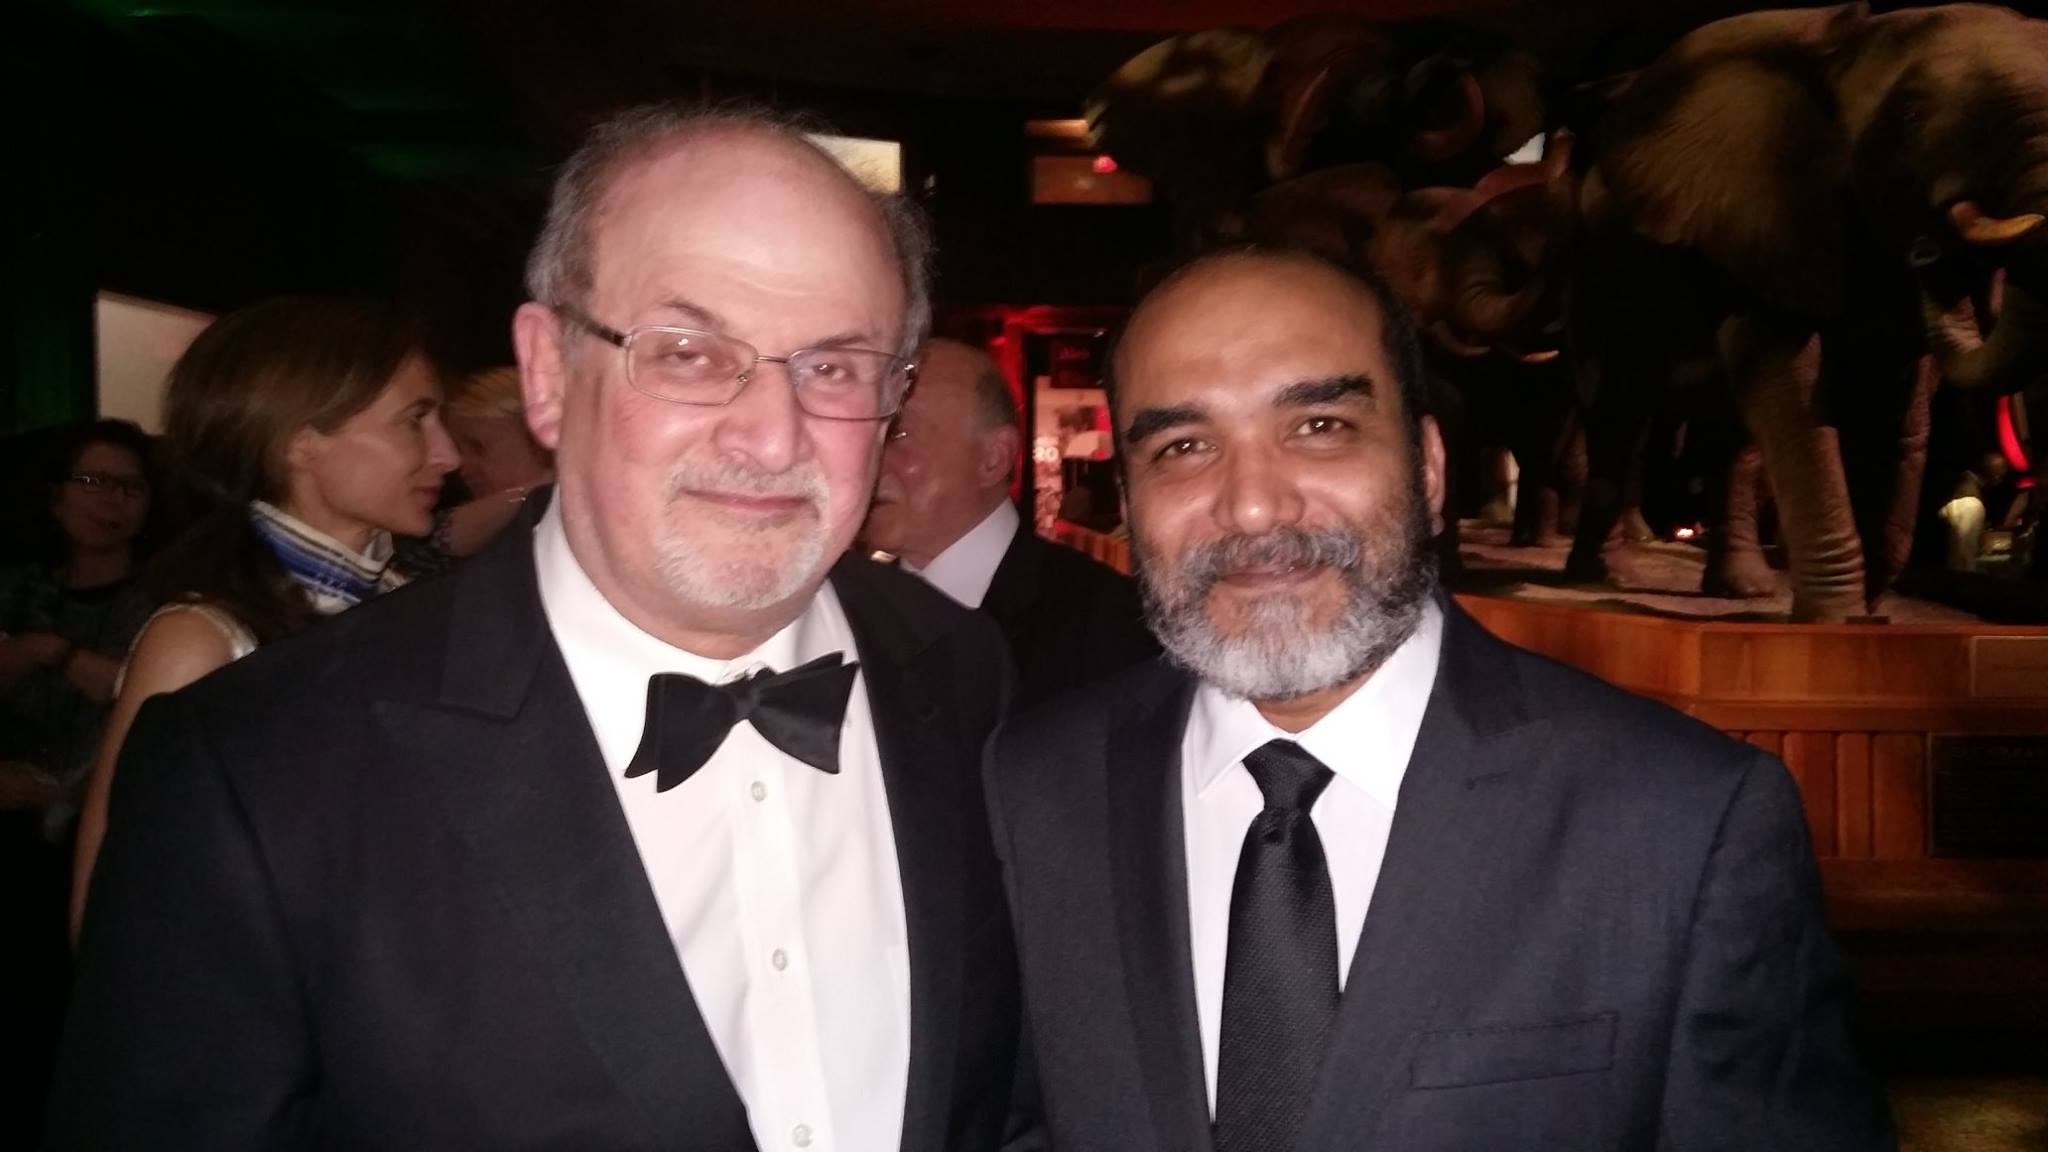 Co-founder of the Shuddhashar publishing house, Mahbub Leelen, together with Salman Rudshdie at the PEN Gala 16 May 2016. Photo.